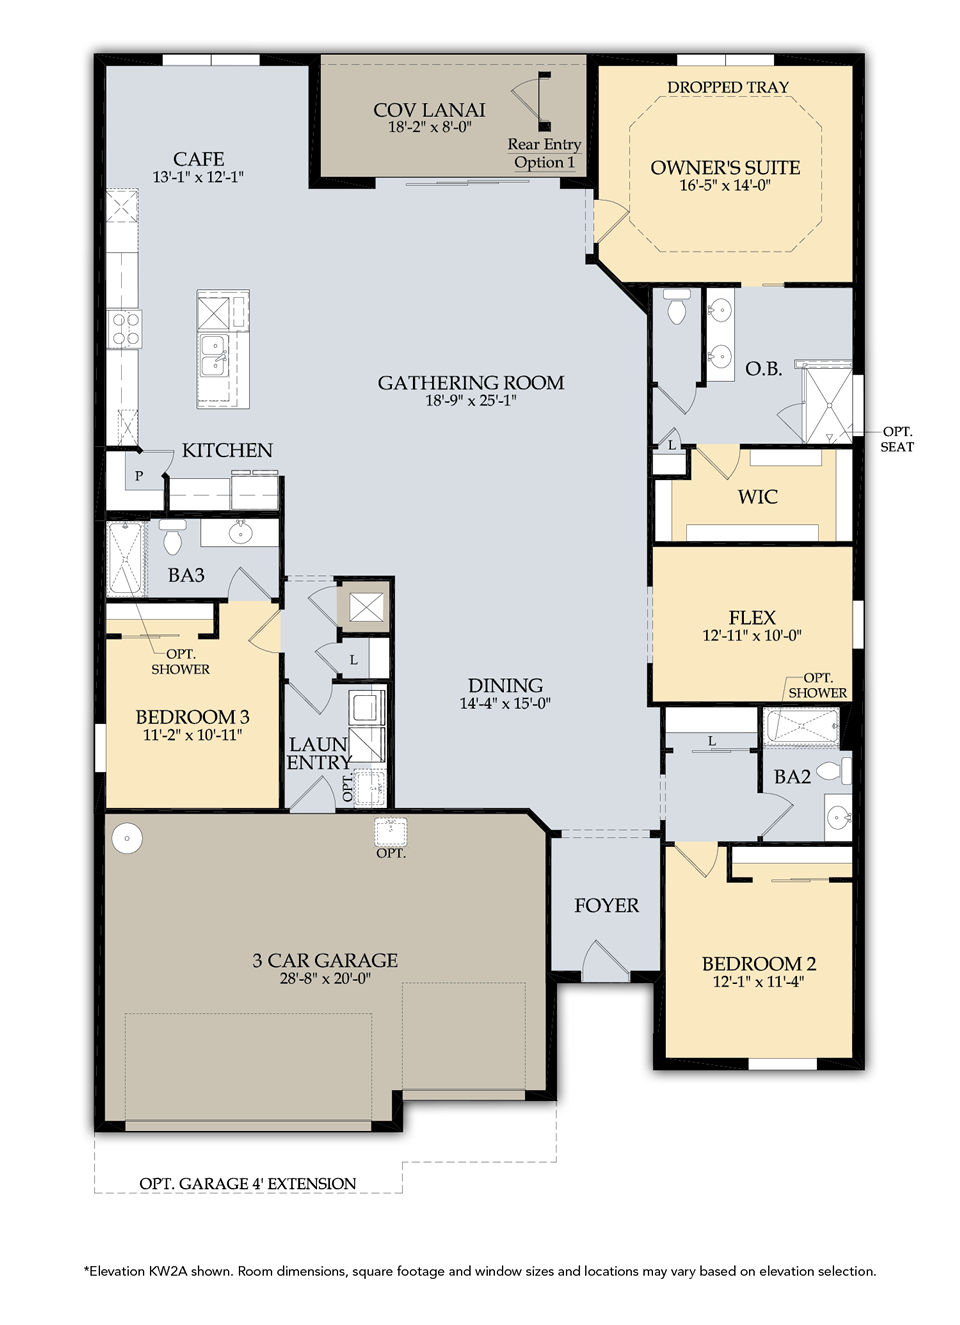 Infinity Floor Plan in Camden Square, Fort Myers, by Pulte, 2,634-3,639 Square Feet, 3-5 Bedrooms / 3-4 Bathrooms, 1-2 Story Home